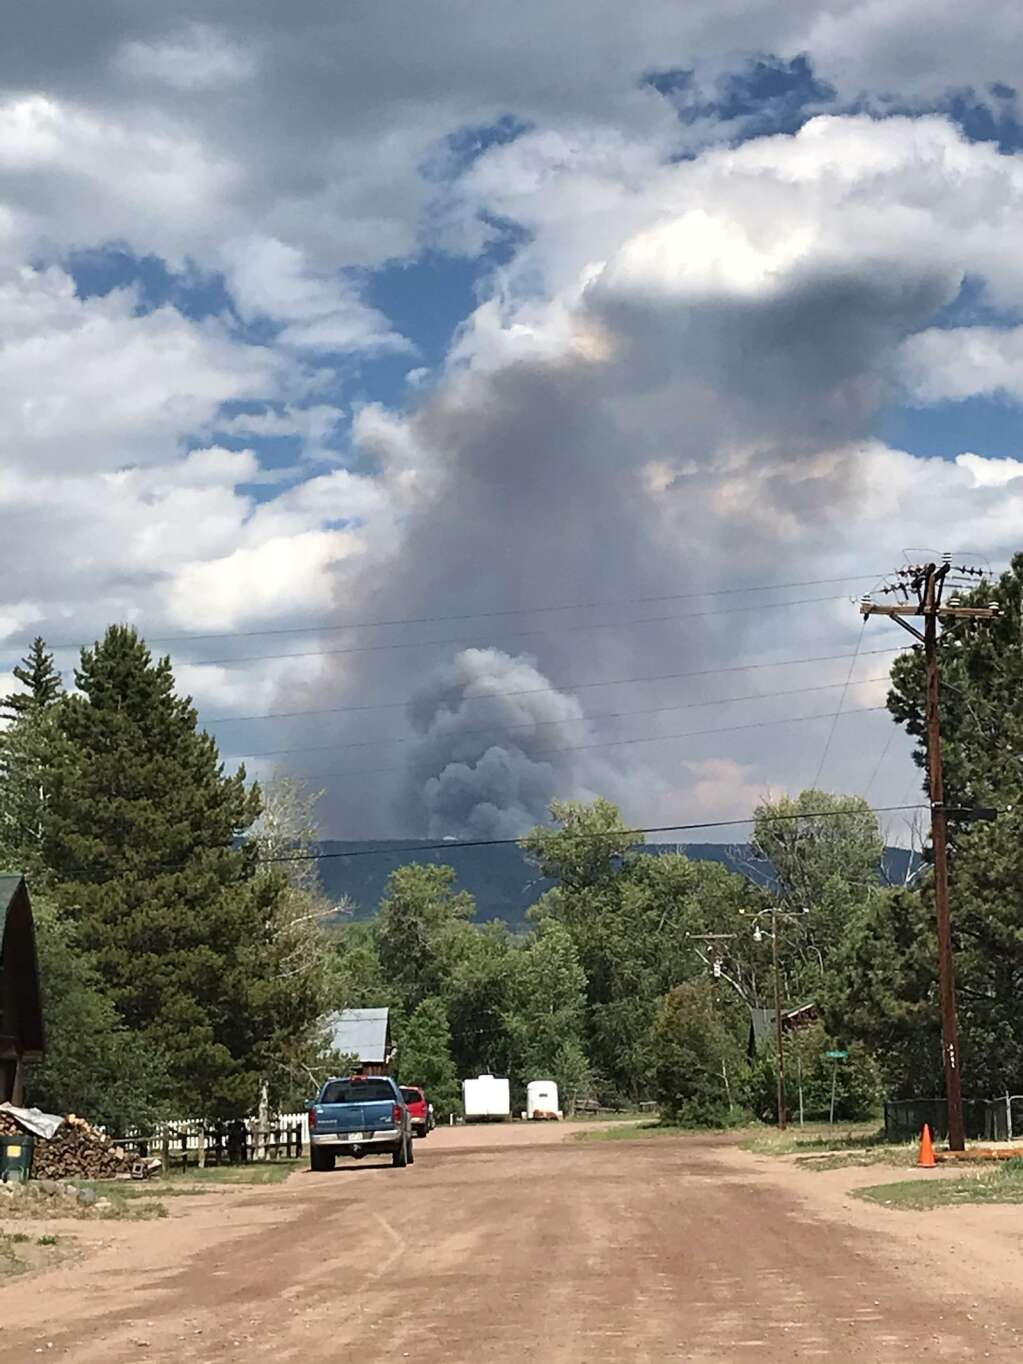 Crews from multiple agencies are responding to the Muddy Slide Fire on June 20 east of Yampa near the Muddy Slide Trail in the Medicine Bow-Routt National Forest. This is a view of the smoke from downtown Yampa. (Photo by Kari Dequine Harden)